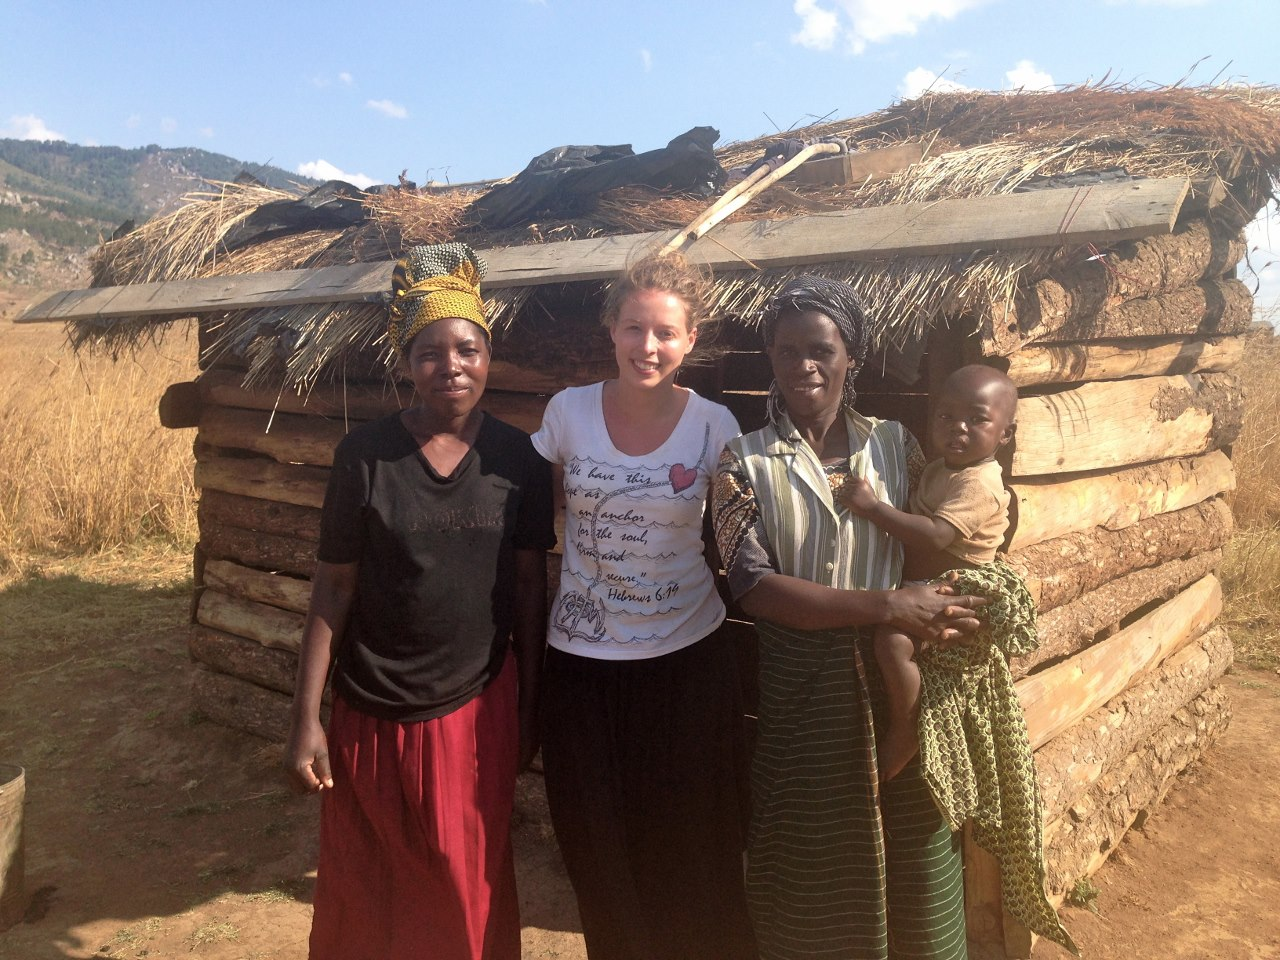 Alice in Malawi. Alice supported the Regional Support Team for Democratic Republic of Congo, Malawi and Zambia.